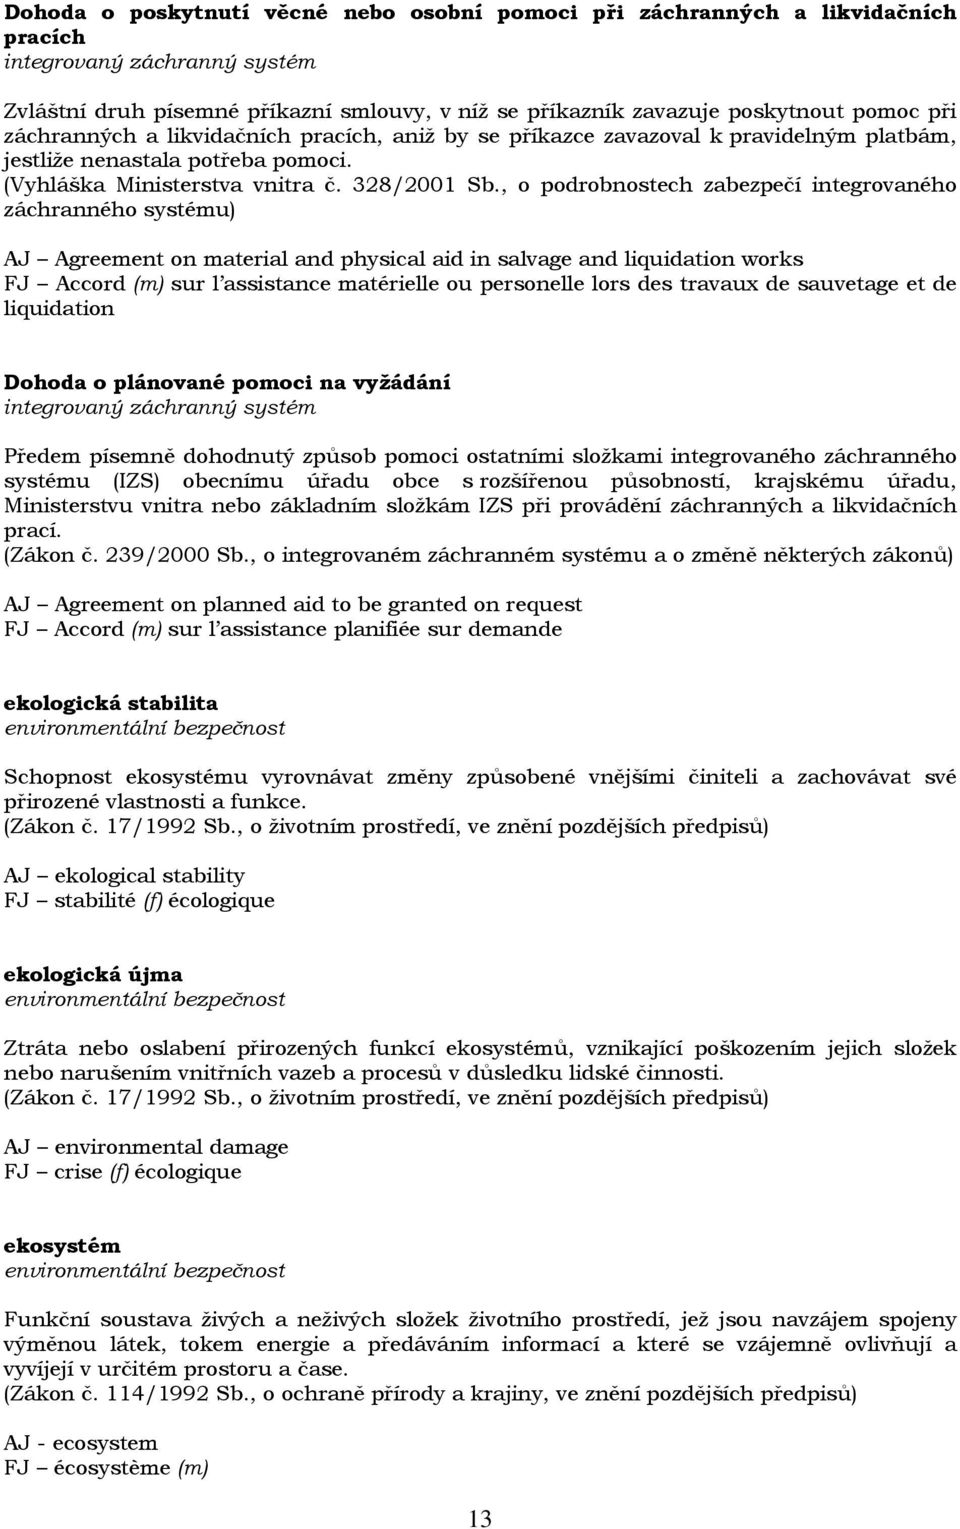 , o podrobnostech zabezpečí integrovaného záchranného systému) AJ Agreement on material and physical aid in salvage and liquidation works FJ Accord (m) sur l assistance matérielle ou personelle lors